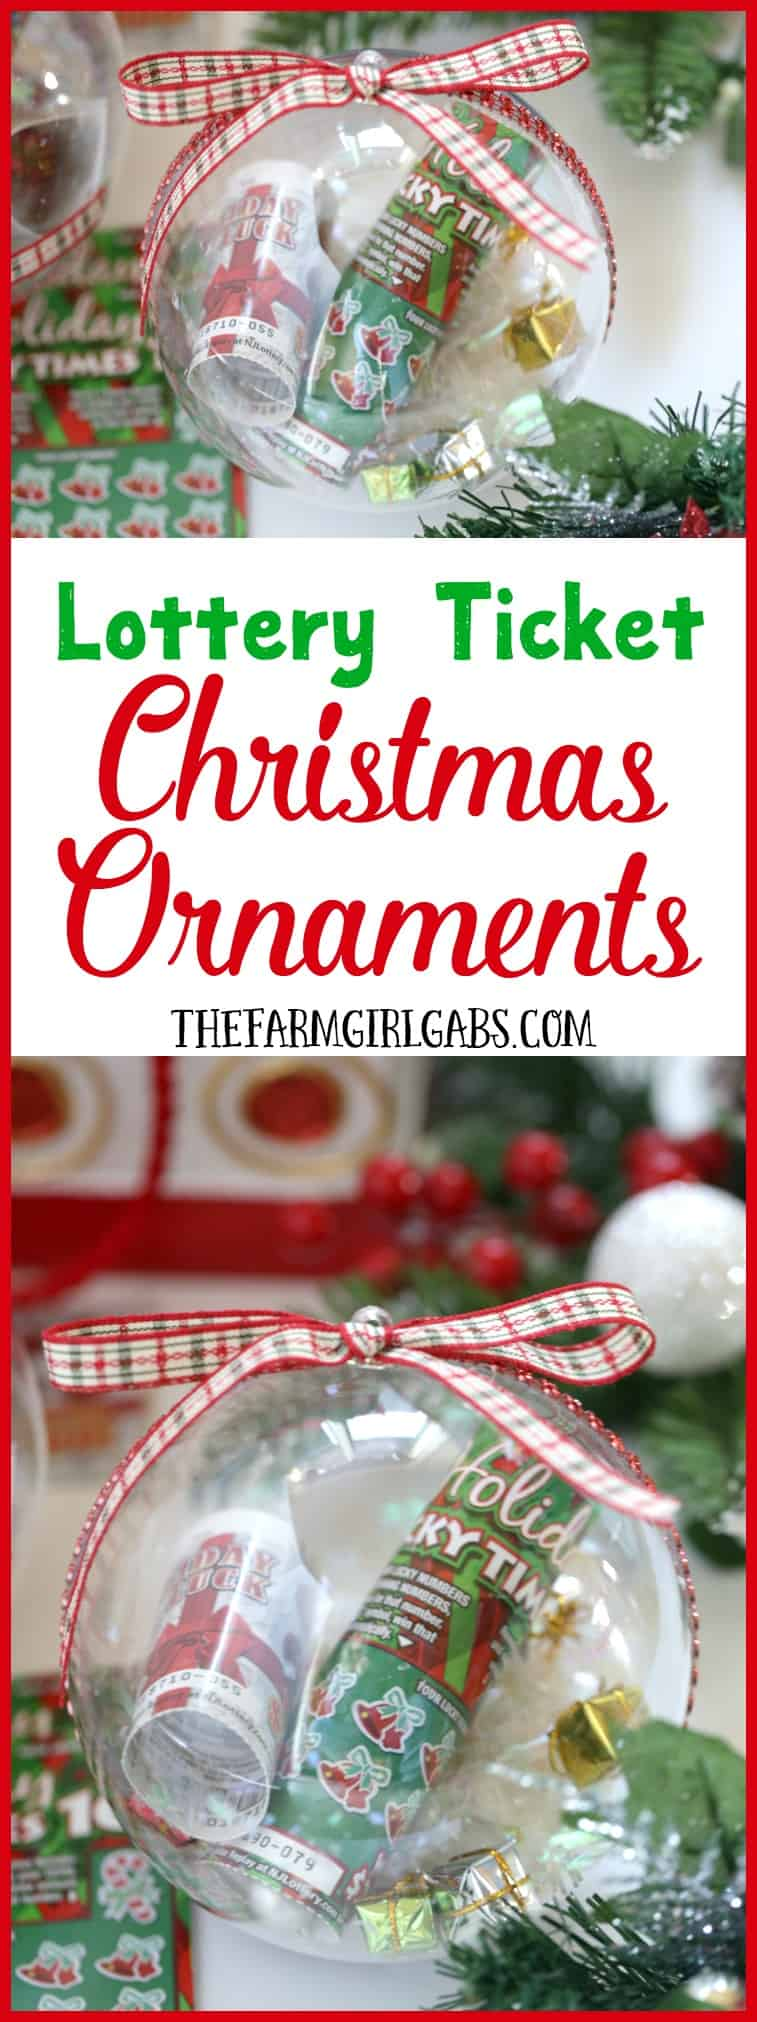 Gift the gift of lottery luck this holiday season with these fun New Jersey Lottery Ticket Christmas Ornaments.